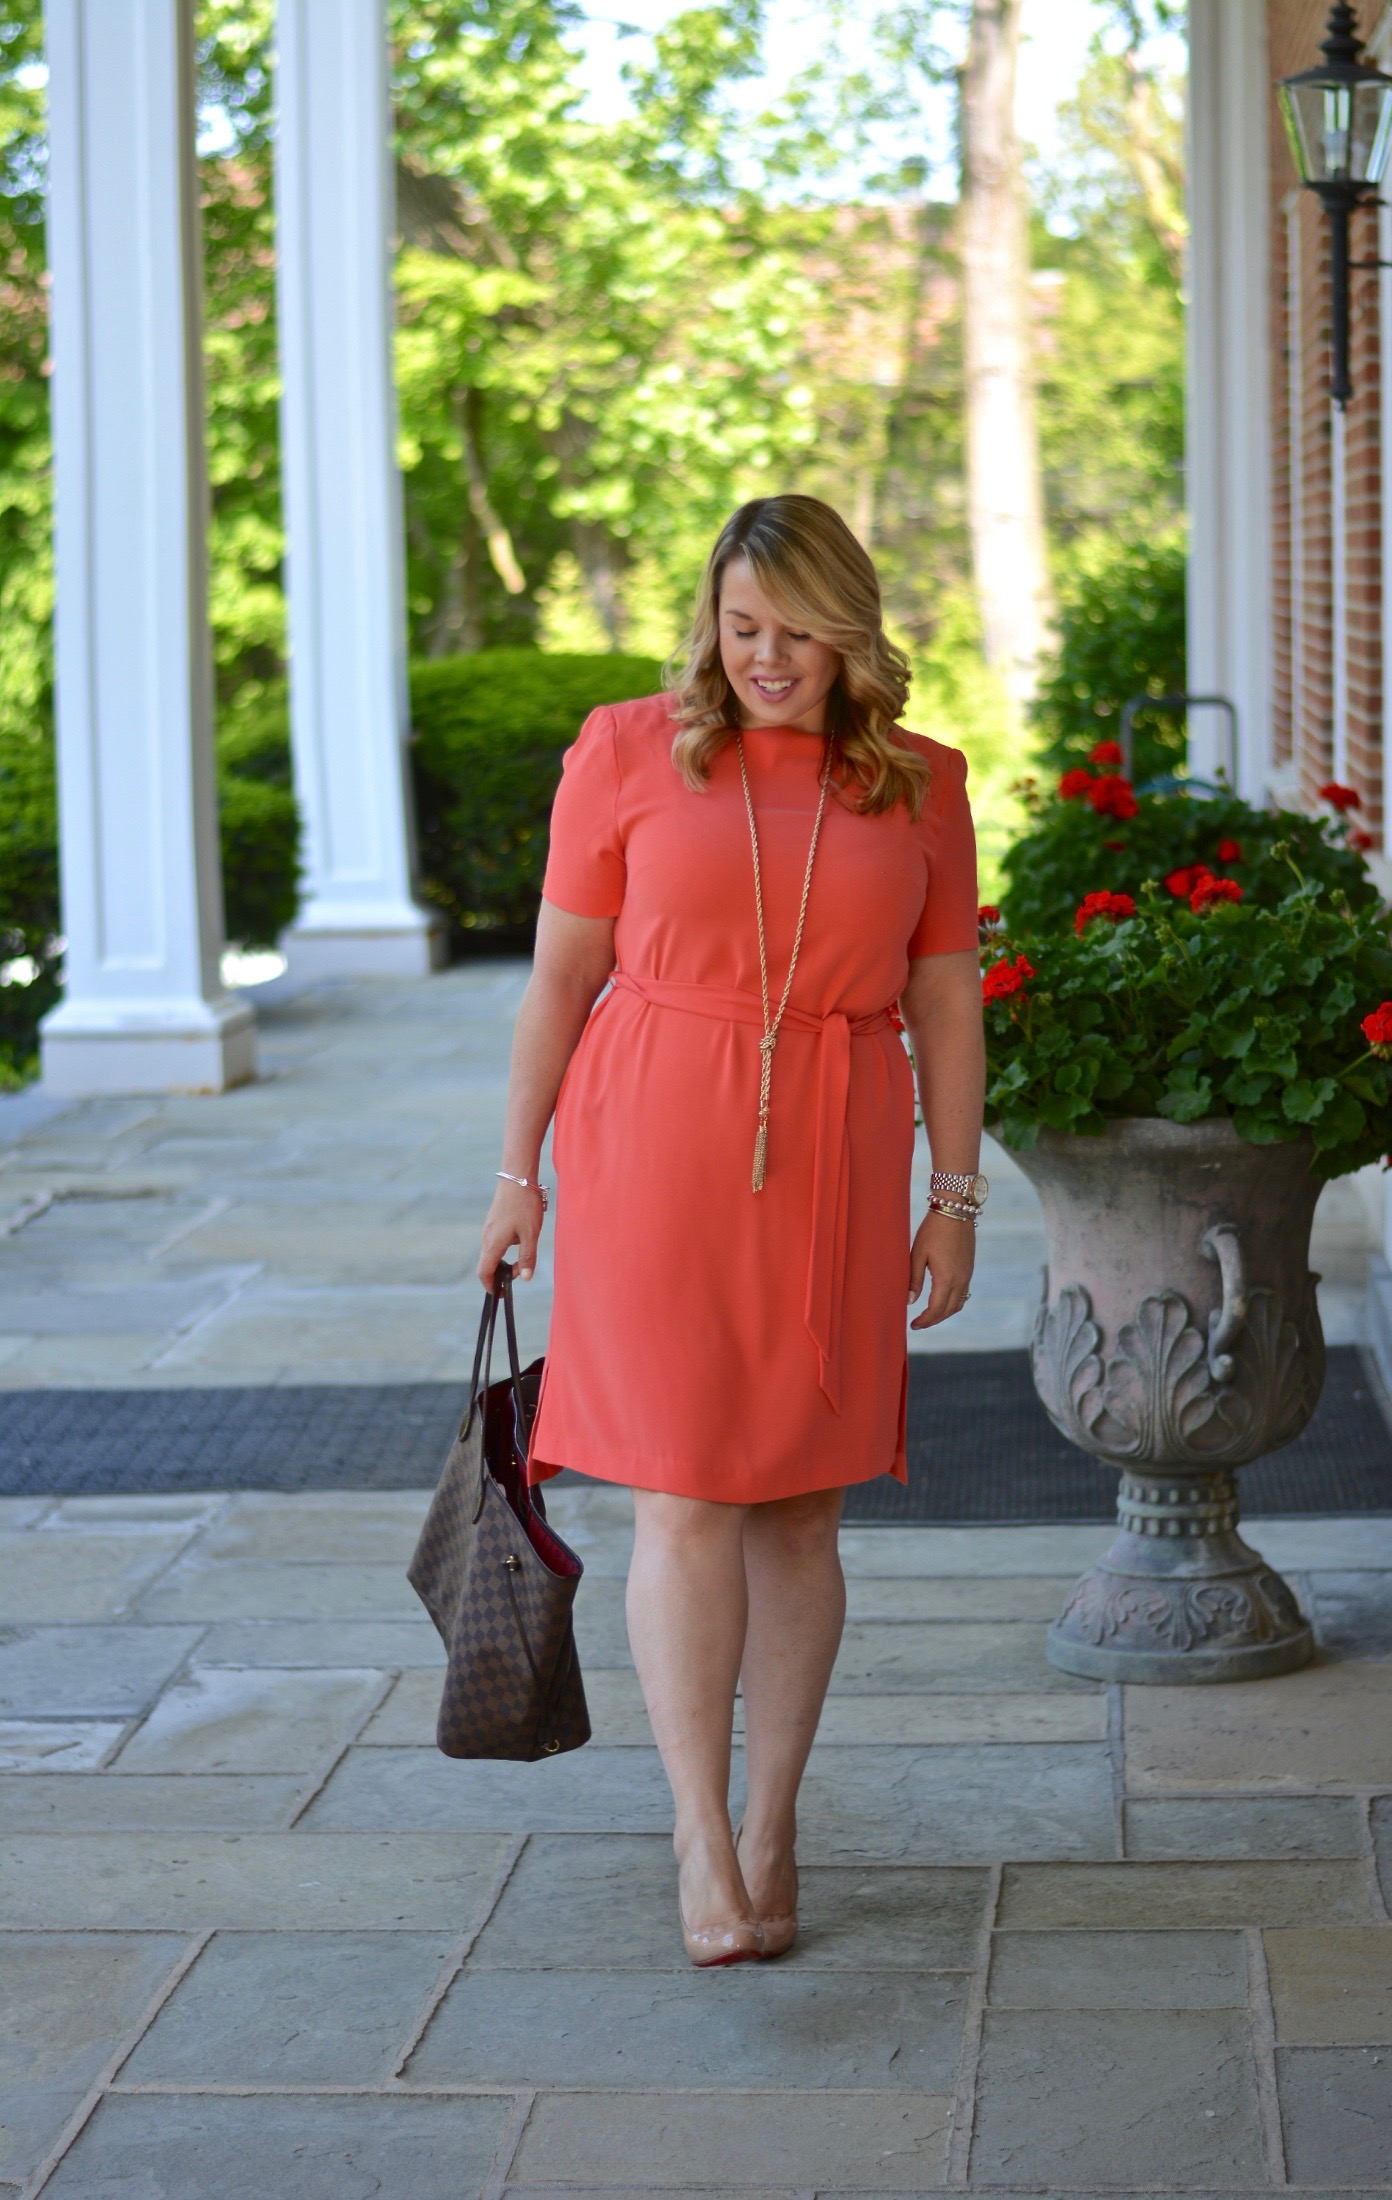 workwear wednesday- belted dress